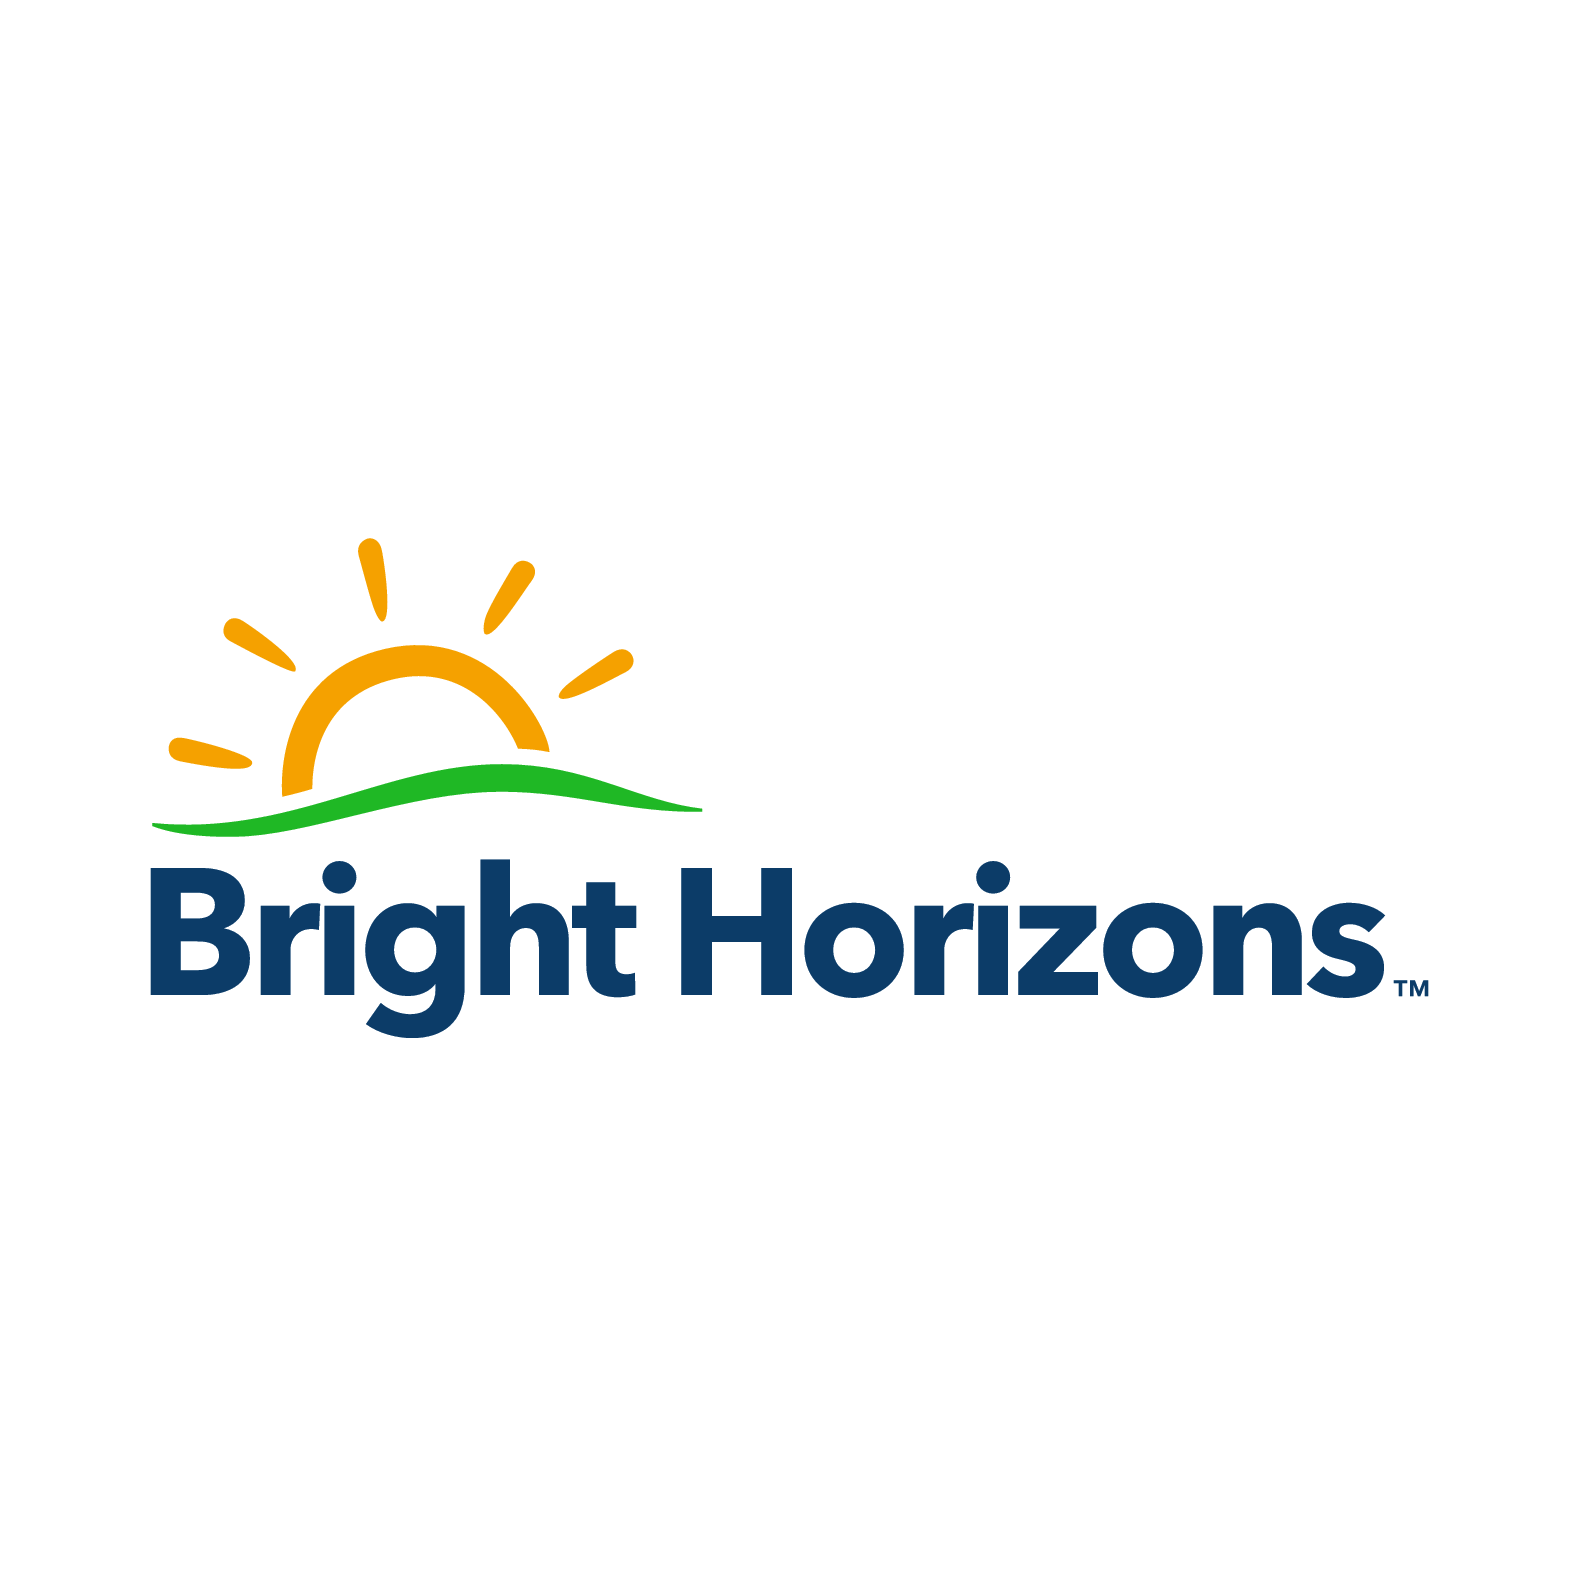 Bright Horizons Southborough Springfield Road Day Nursery - Tunbridge Wells, Kent TN4 0RD - 03300 573965 | ShowMeLocal.com